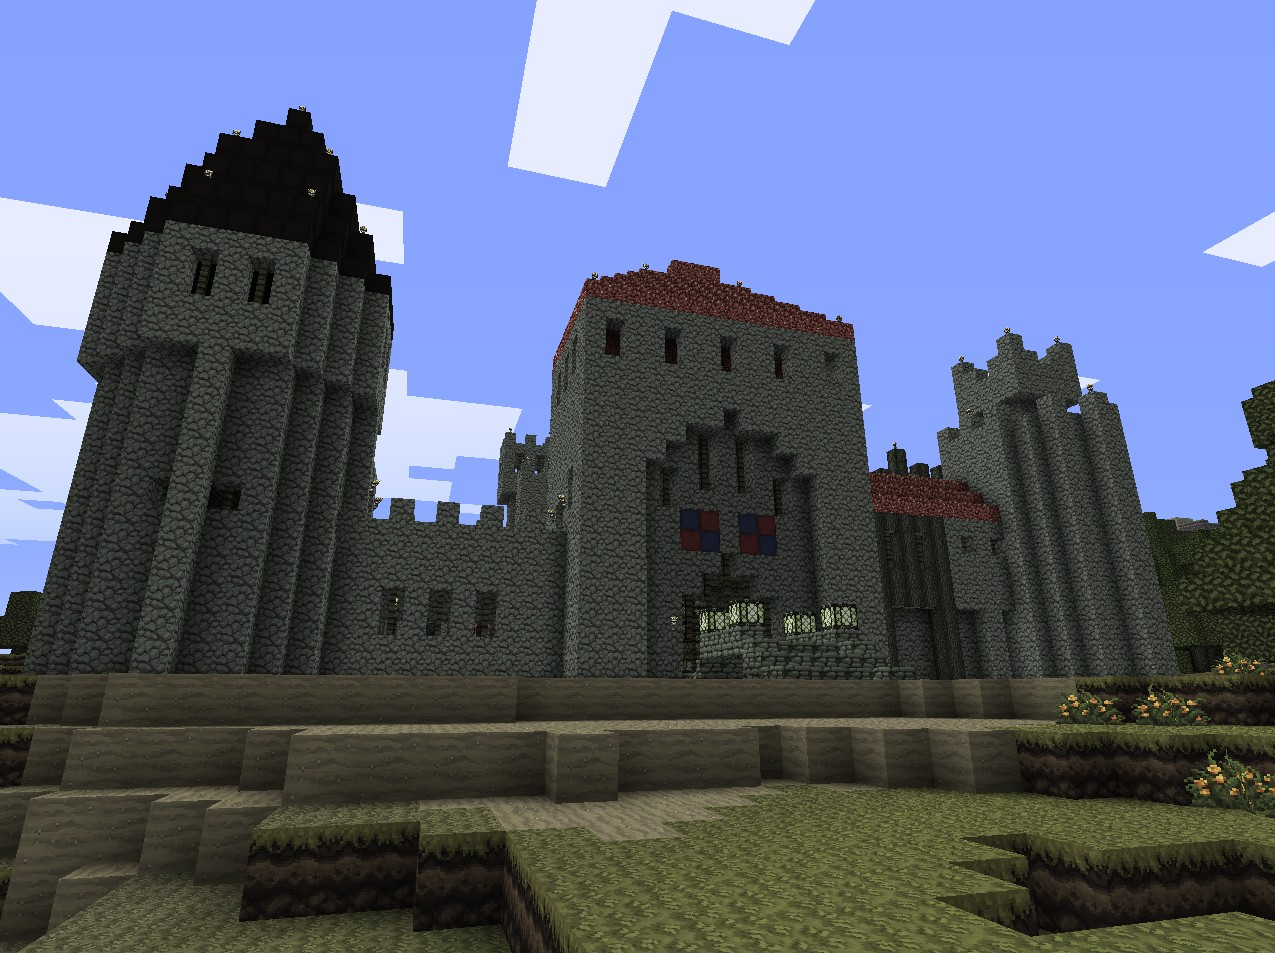 castle muiderslot  schematic  minecraft project